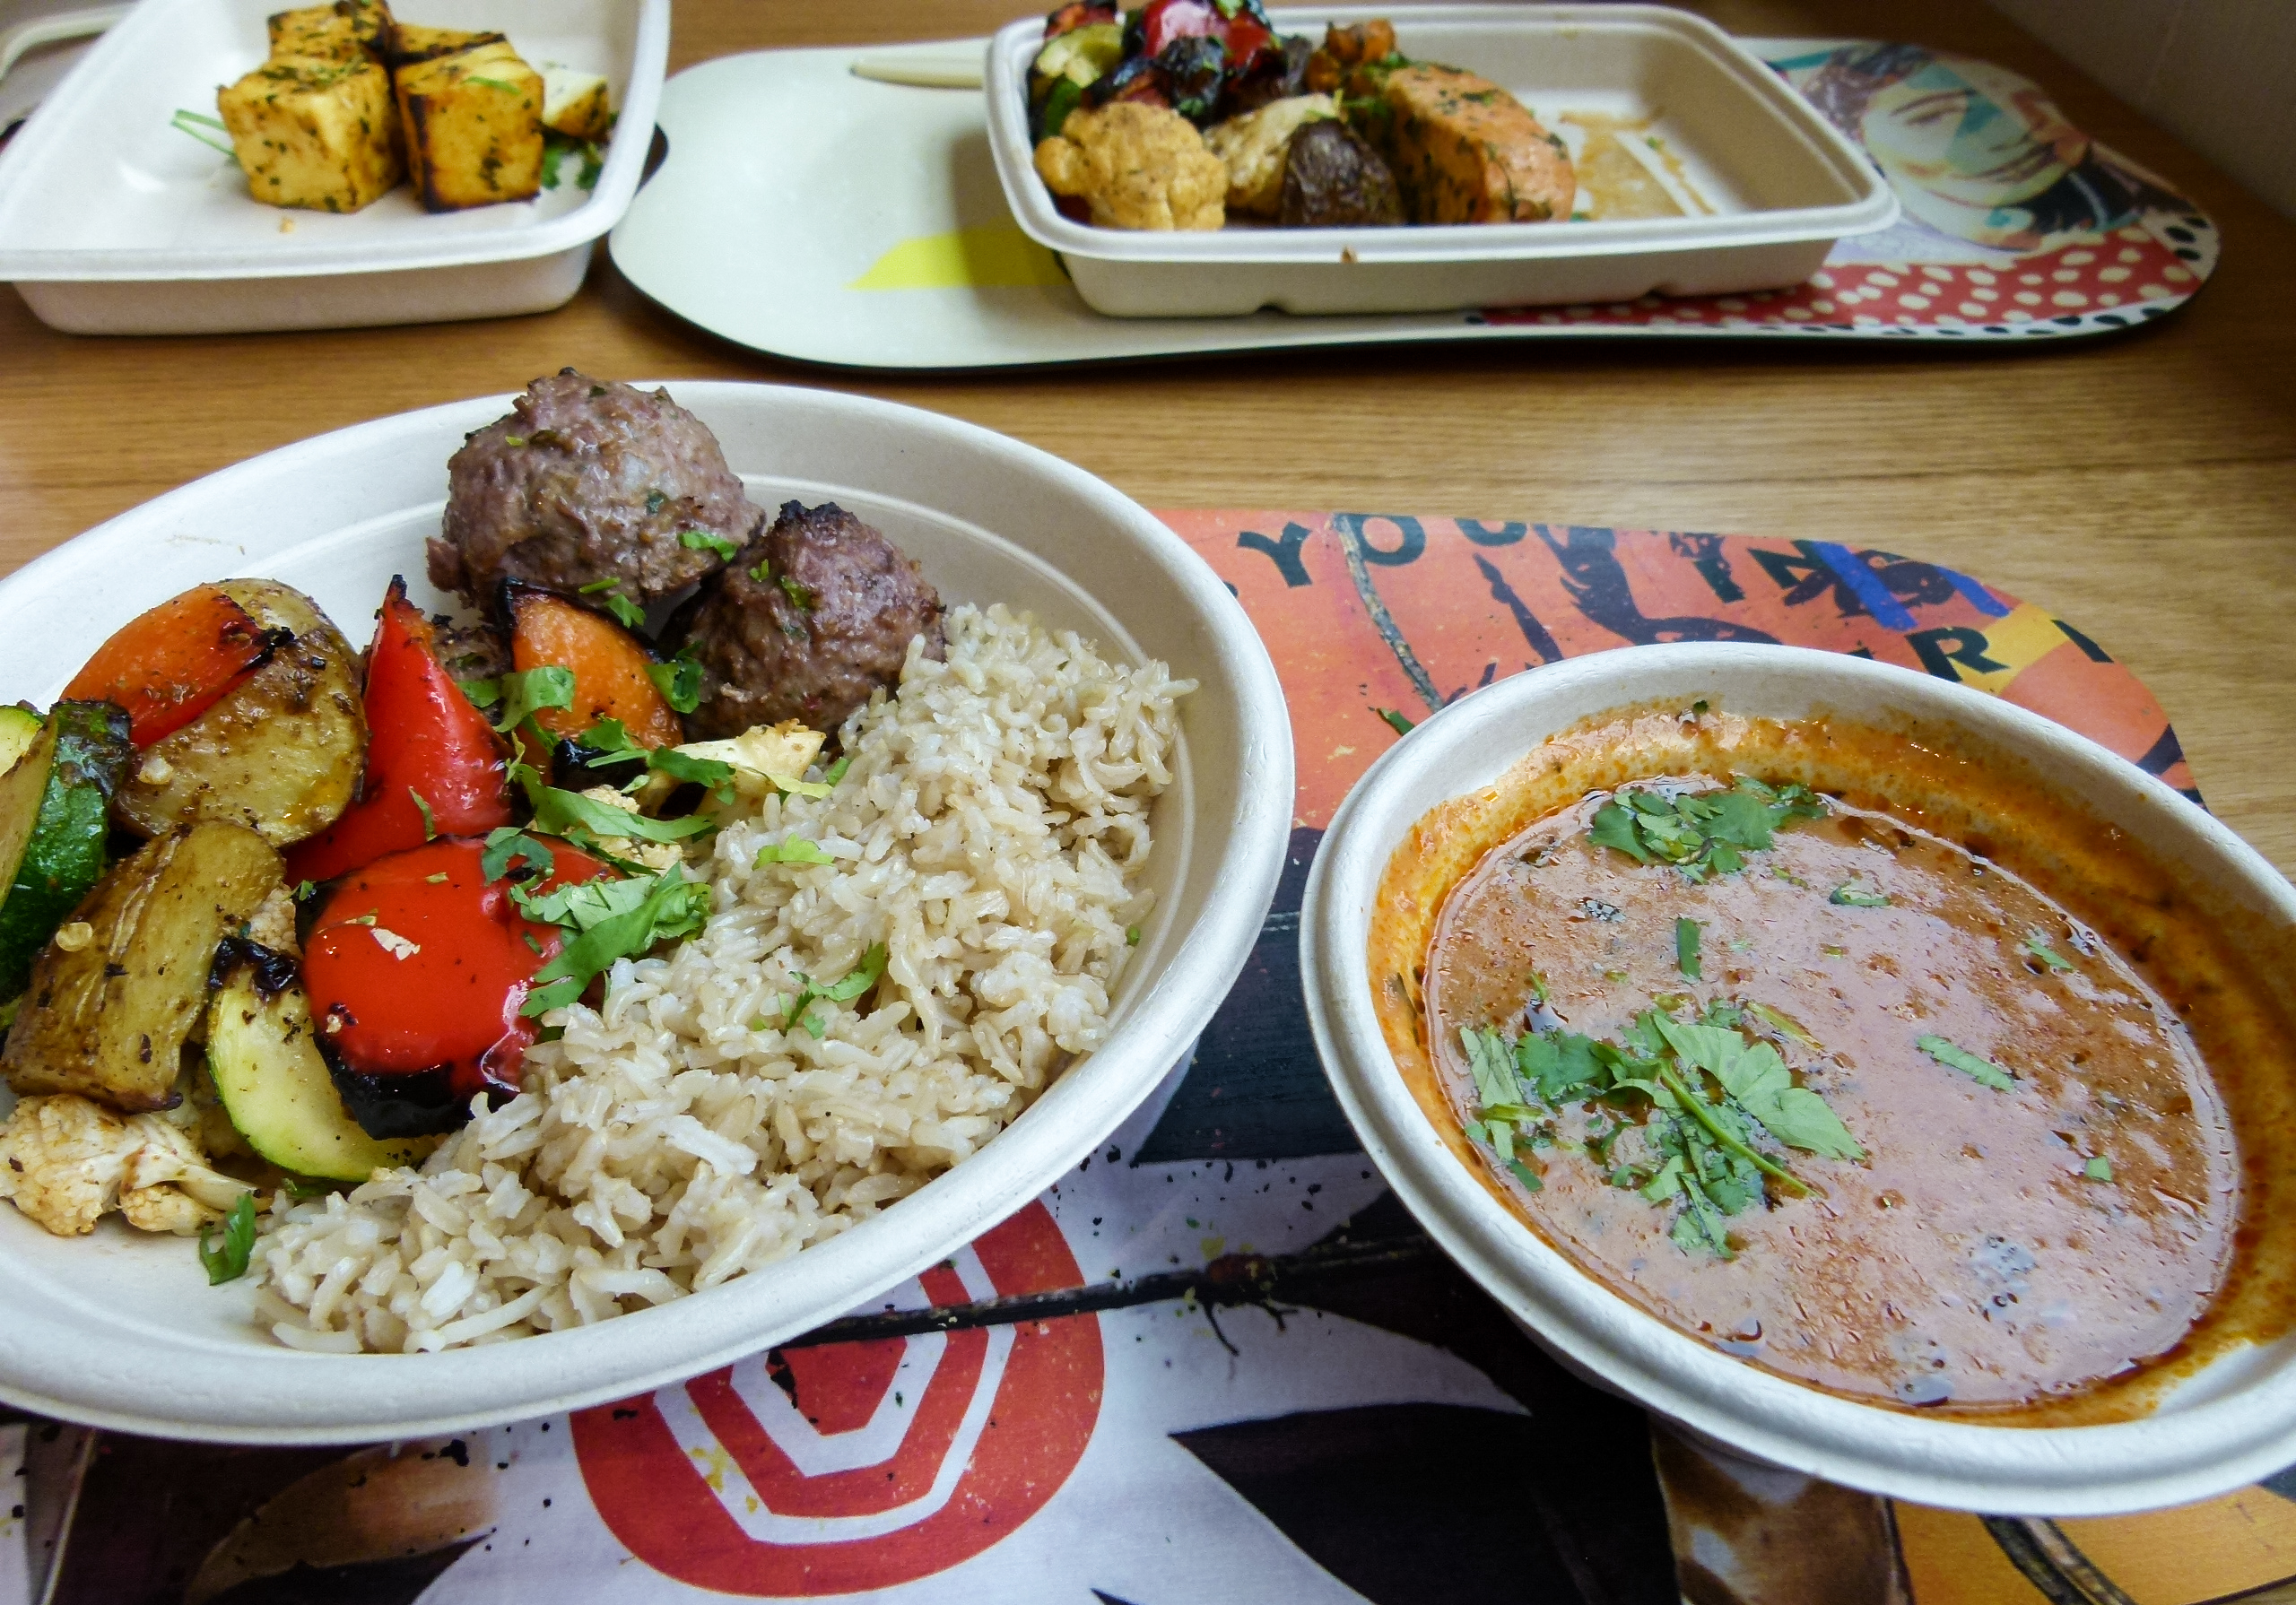 The Perfect Balance Bowl with lamb meatballs , rice and roasted veggies and the tikka maasala sauce on the side. There were three lamb meatballs, but one was eaten prior to the photo being taken.